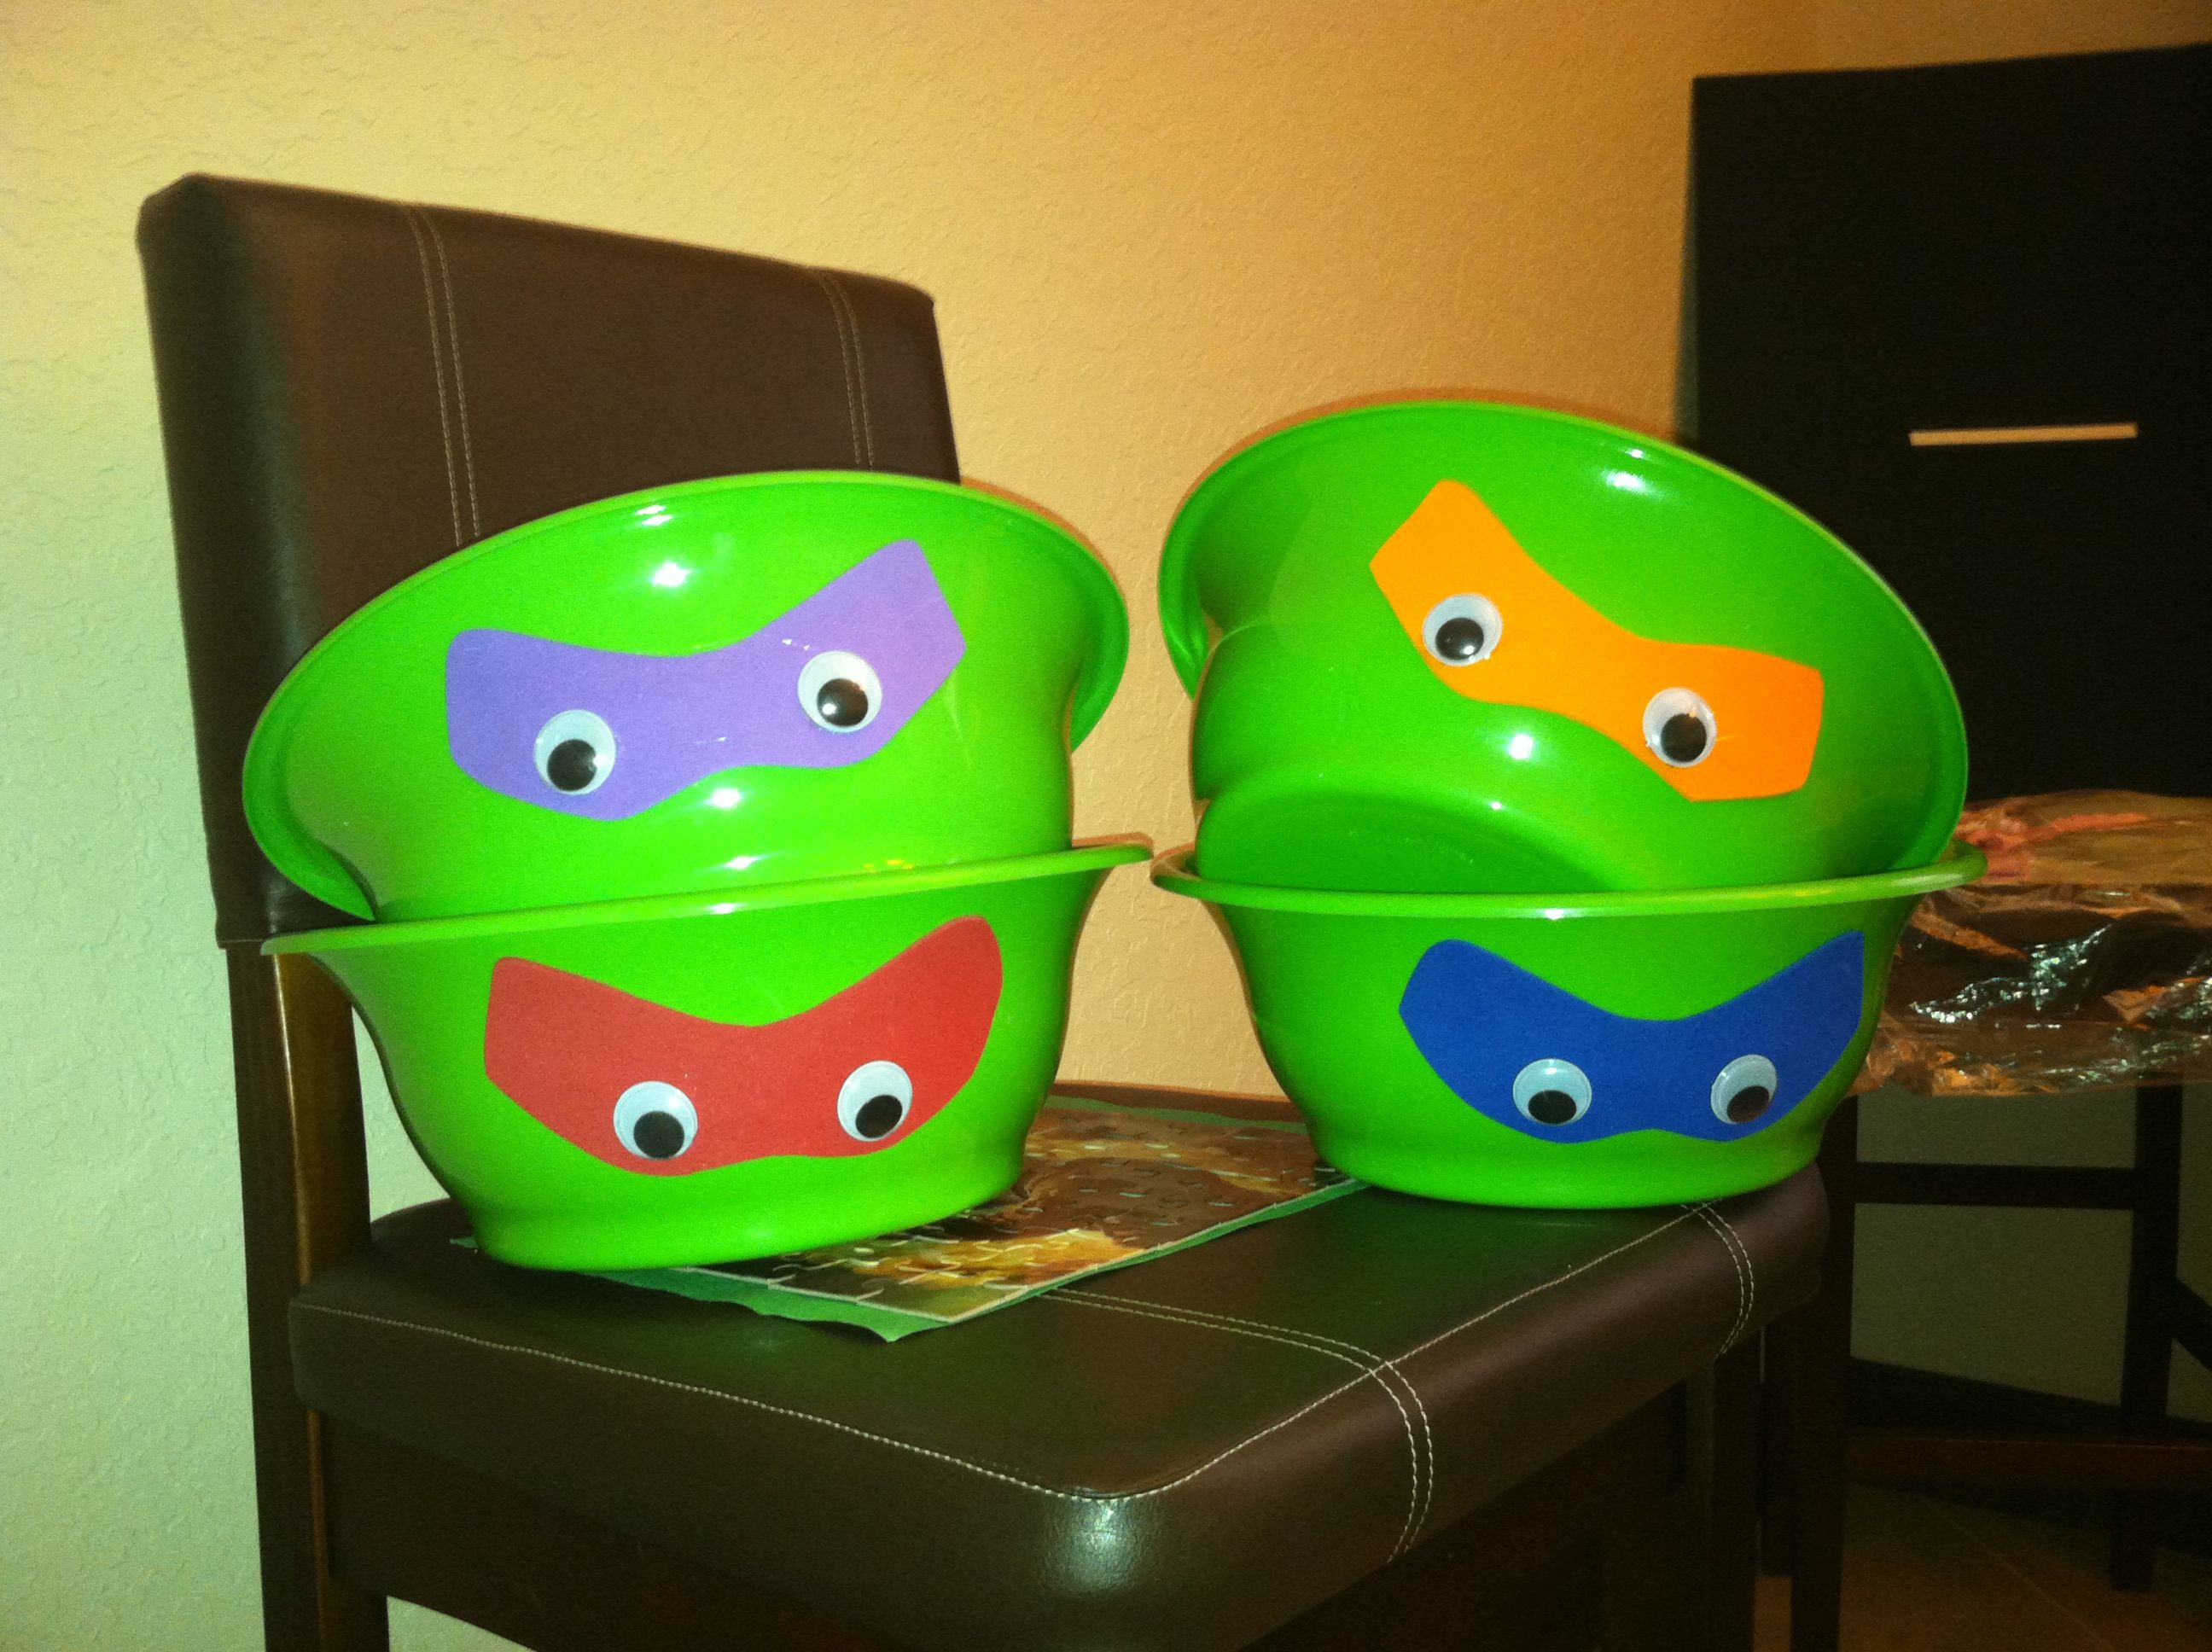 Tmnt birthday party bowls for food can usually buy these at dollar